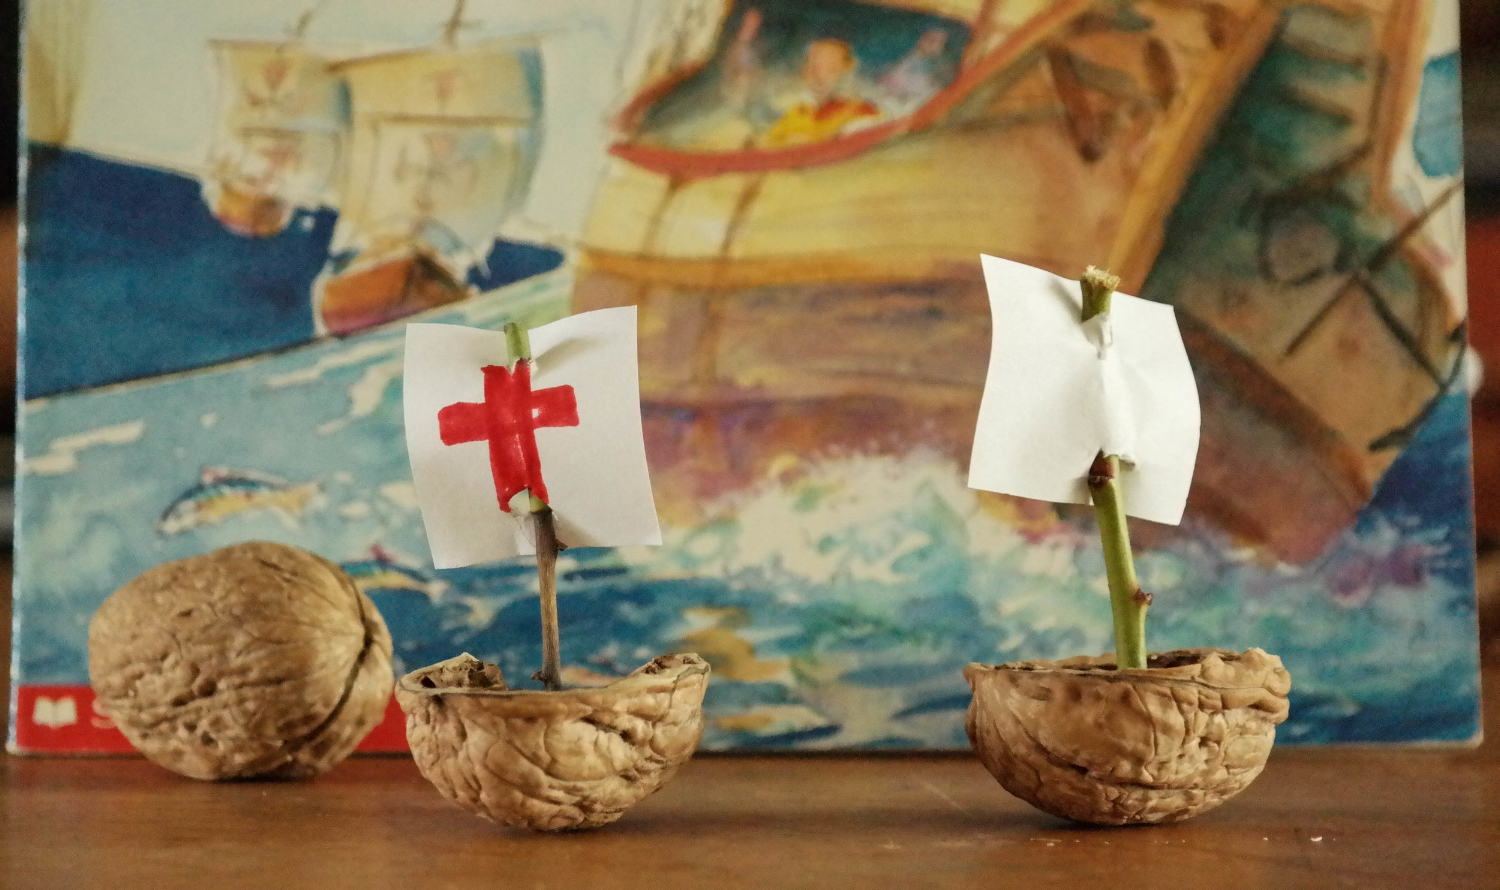 The walnut shell boats were created by carefully cracking a nut in half and scooping out the meats. We then put a small piece of clay in the empty shell, stuck a twig in the clay, and attached a paper flag to the twig. Easy and adorable.